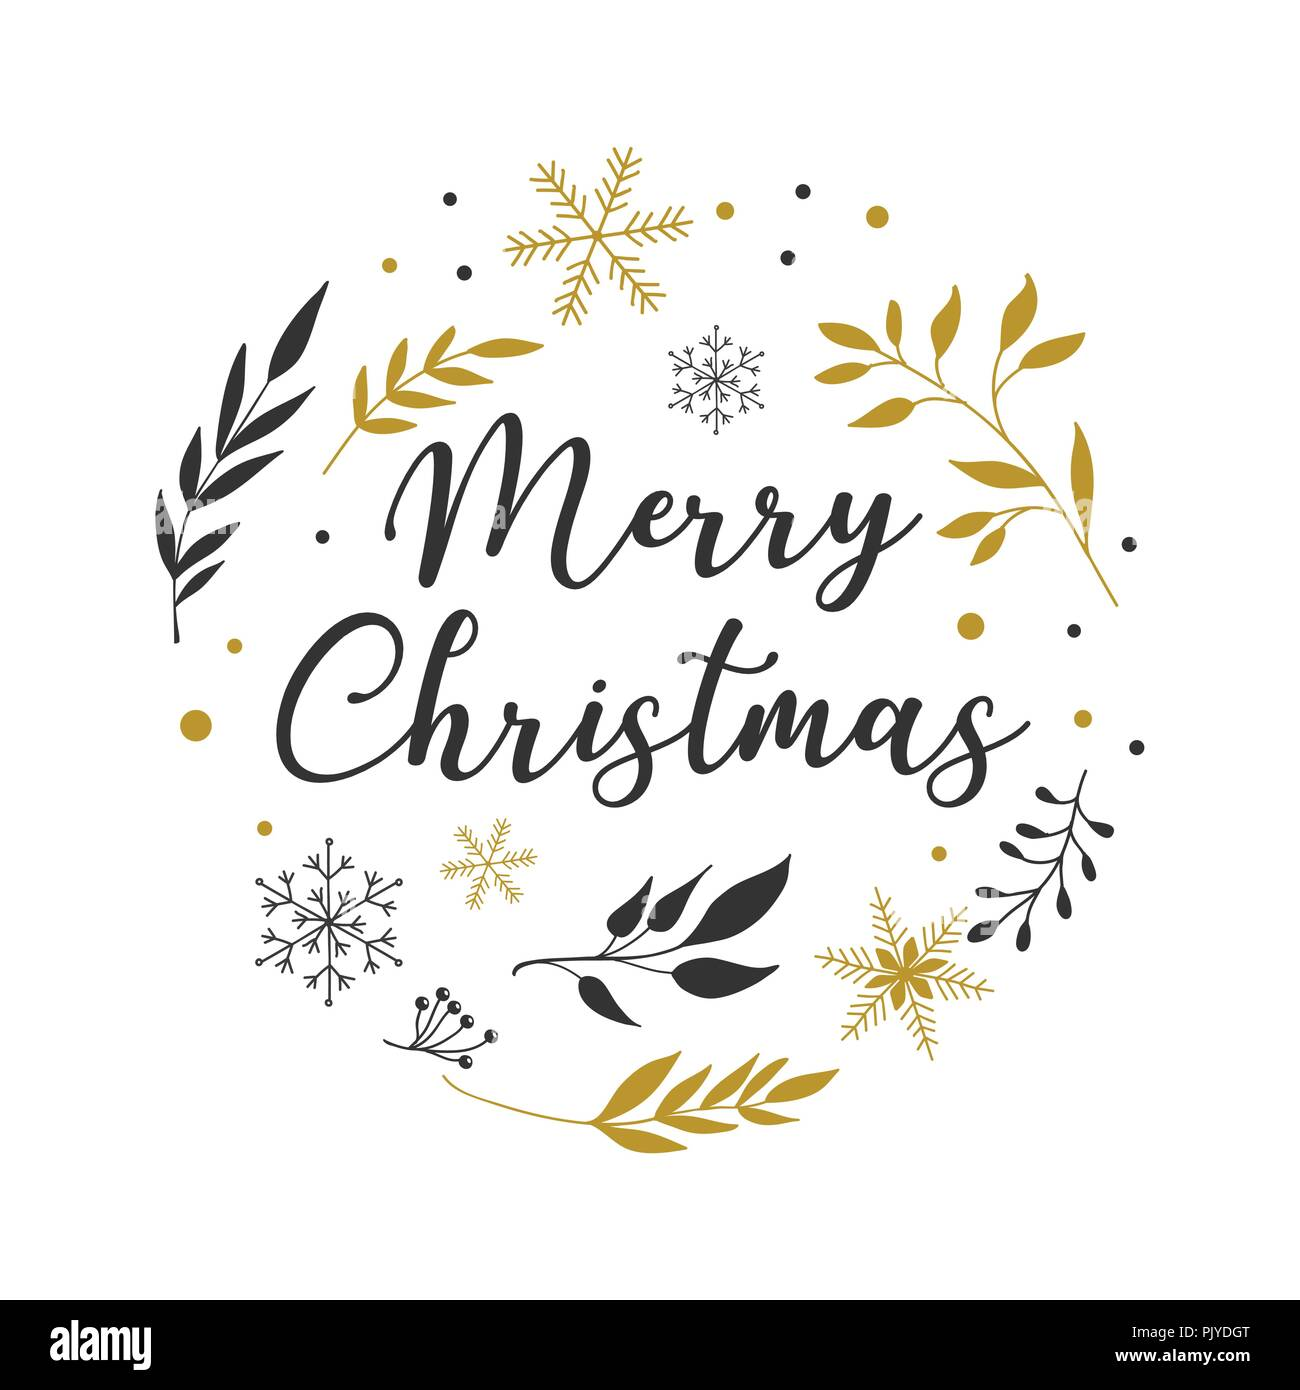 Merry Christmas Background with Typography, Lettering. Minimalistic simple greeting card - Stock Image